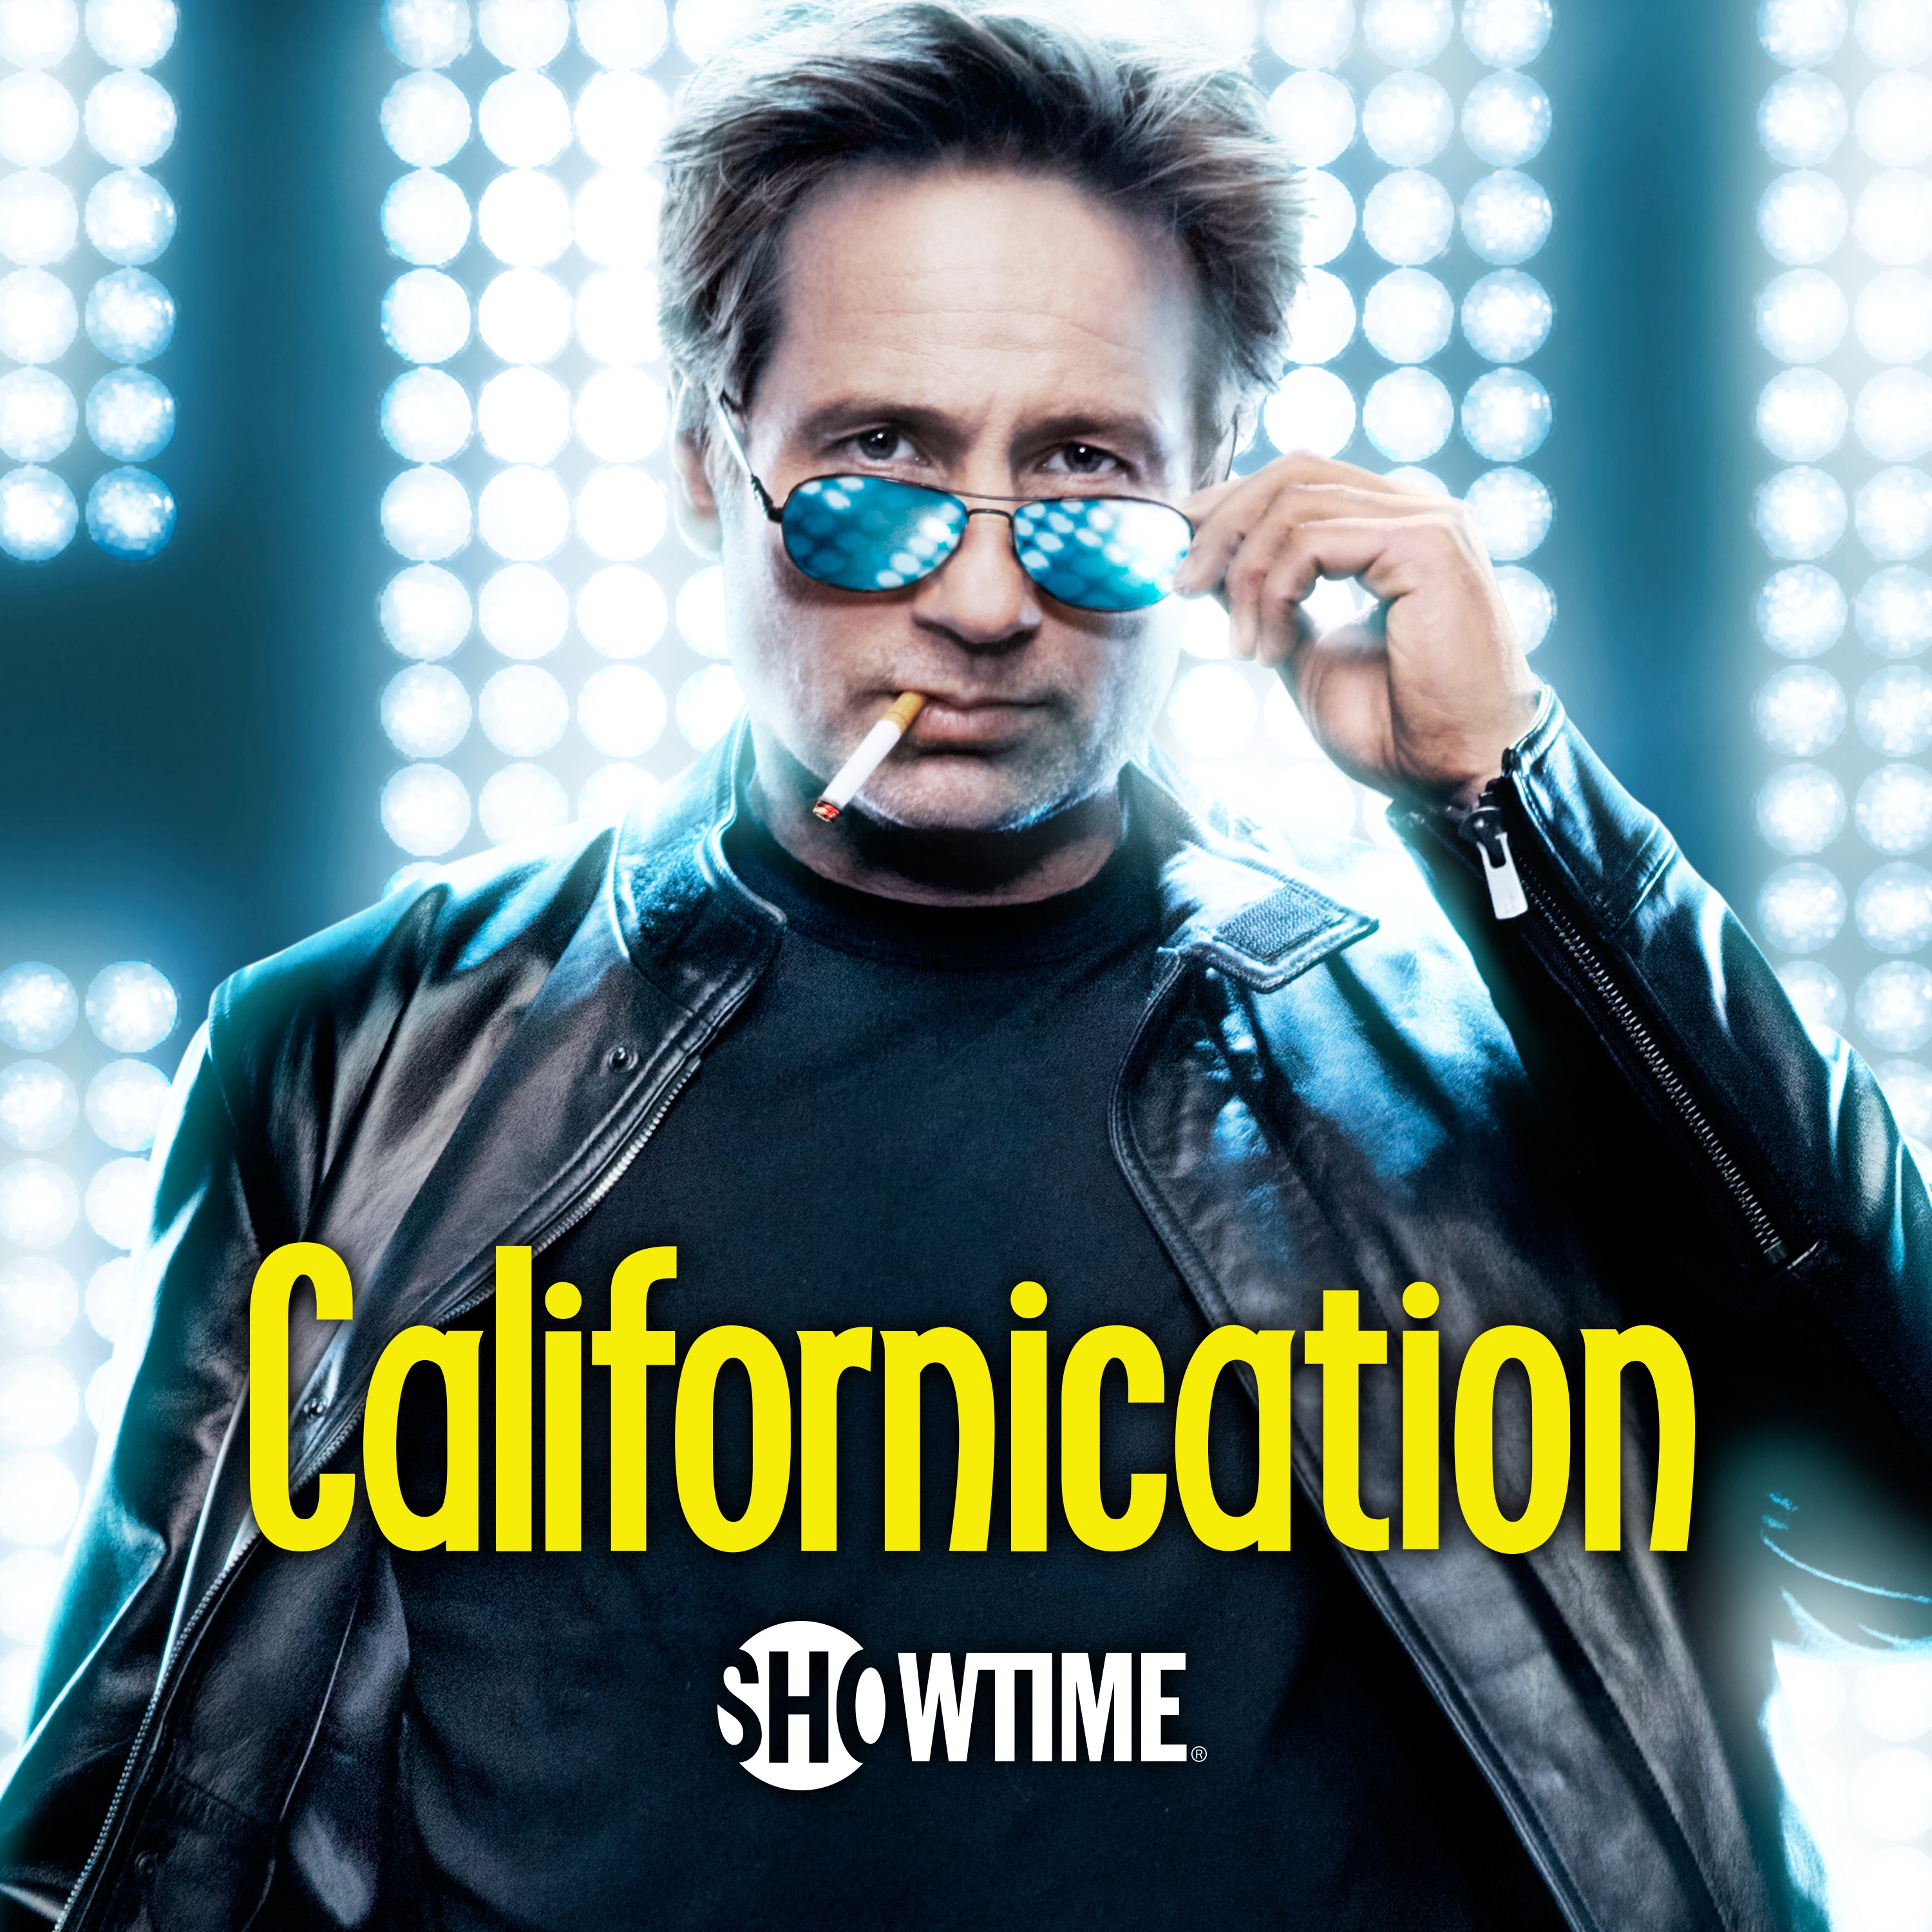 Californication season 6 episode 4 tv links - Author of wild